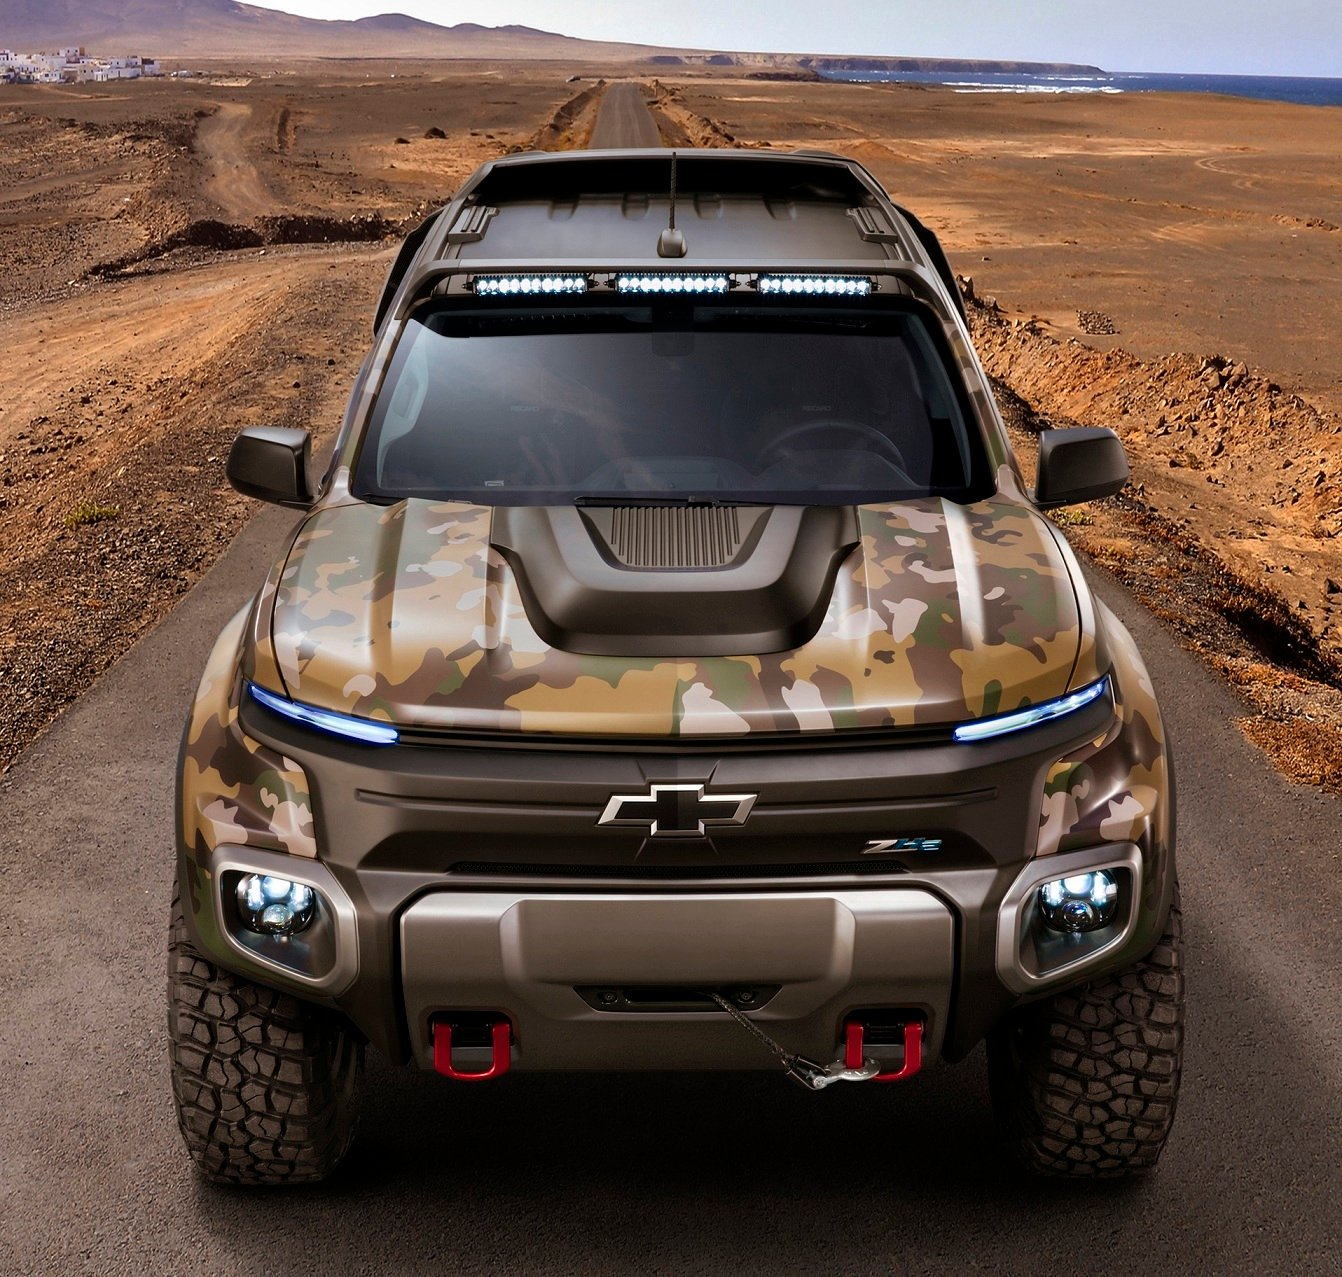 The Chevrolet Colorado ZH2 fuel cell electric vehicle, revealed Monday at the Association of U.S. Army Show in Washington, D.C., strikes an aggressive pose with a power dome on its hood to denote the presence of the hydrogen-powered fuel cell system underneath. General Motors and the U.S. Army Tank Automotive Research, Development and Engineering Center (TARDEC) collaborated on the vehicle, which went from contract to completion in a year.